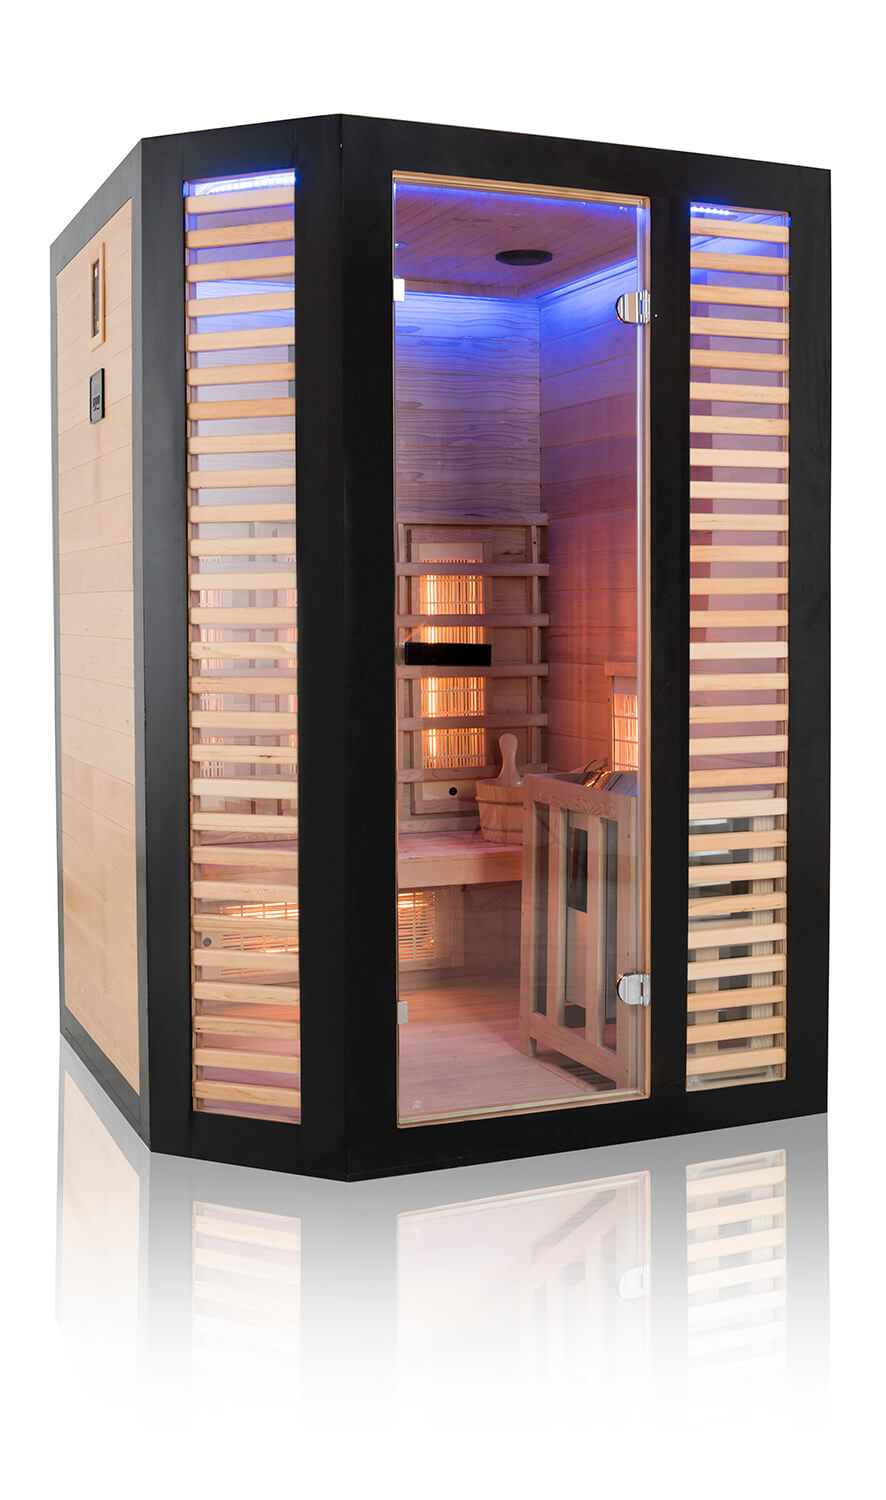 Sauna Hybride Graphite - 2/3 places + pôele 3,5 kw + pierre - reconditionné